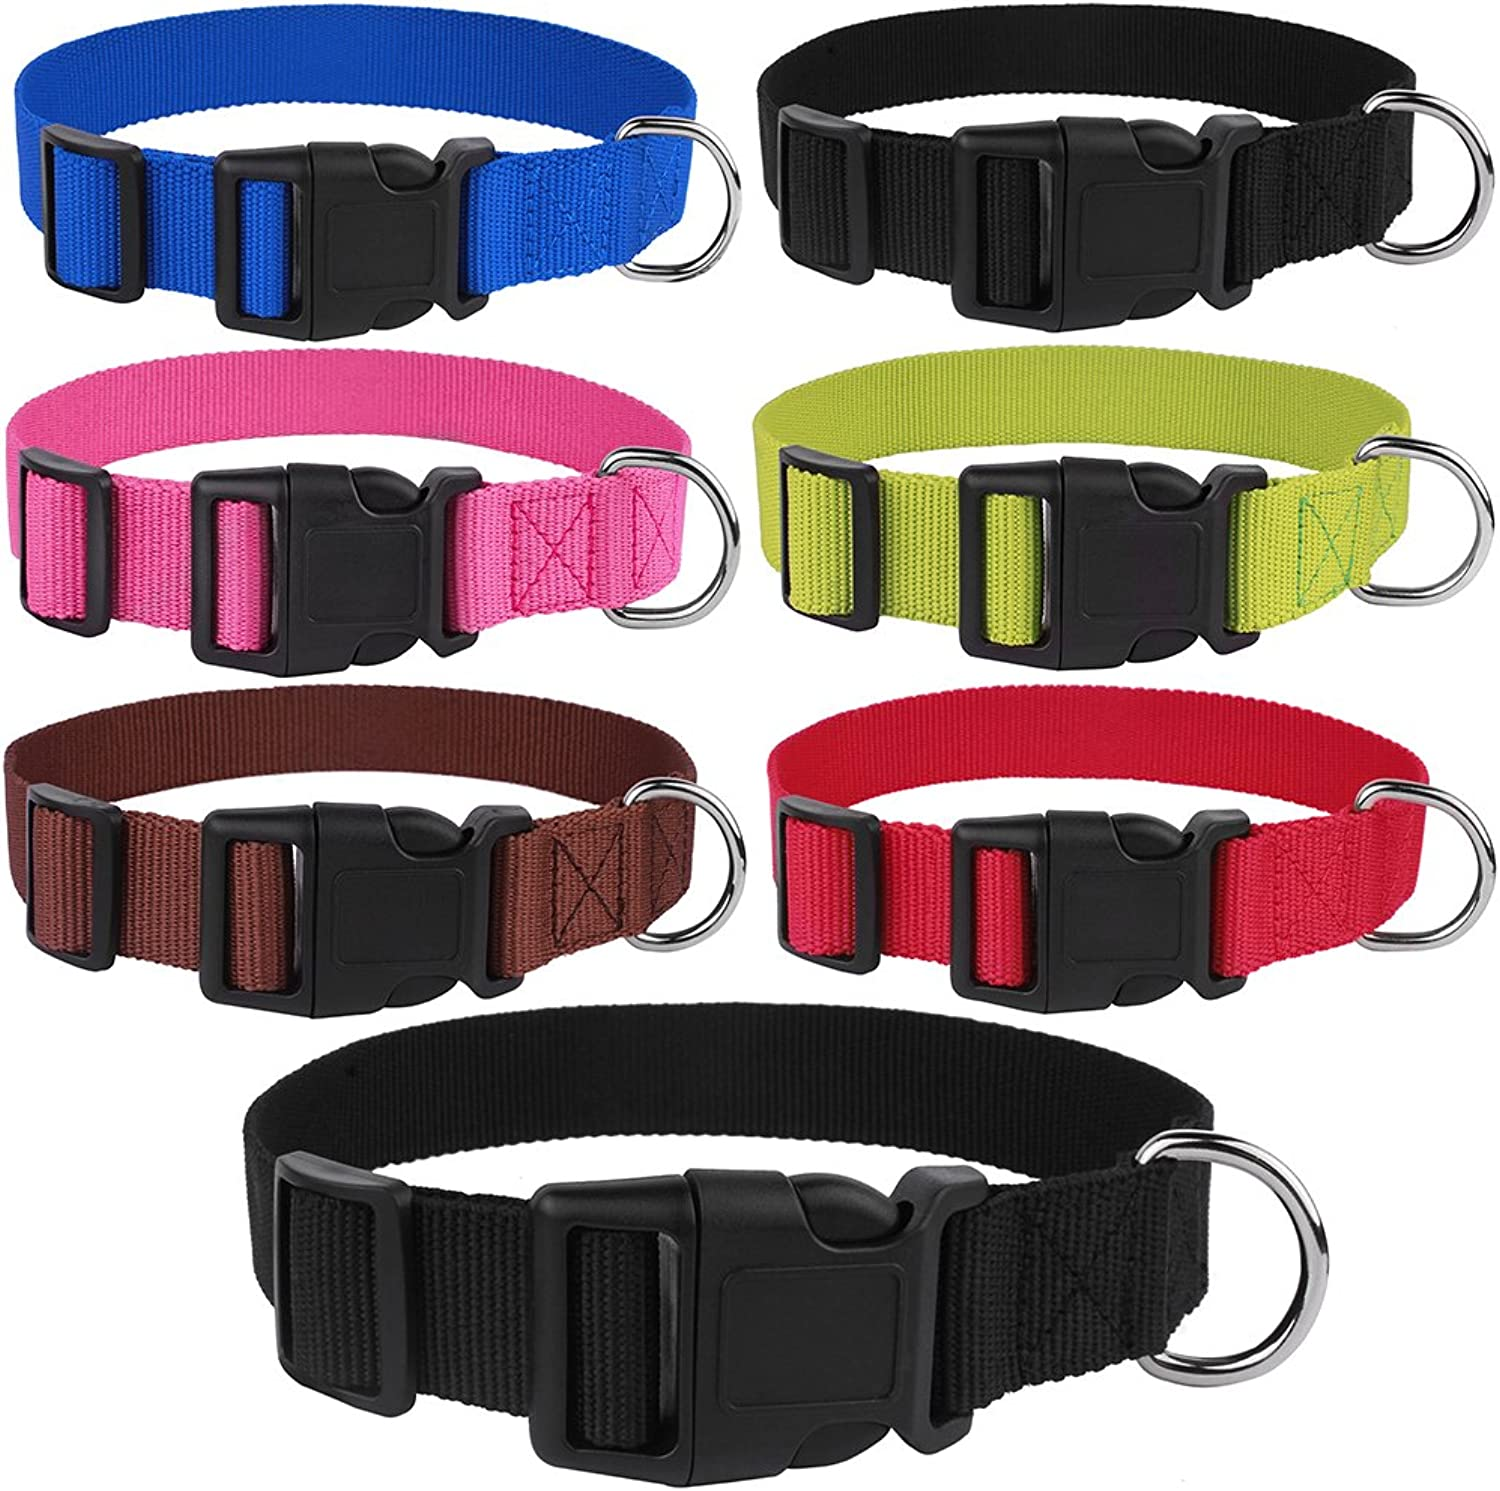 CollarDirect Nylon Dog Collar Side Release Buckle Adjustable Puppy Collars Dogs Small Medium Large (L Neck Fit 1320 inch, Black)